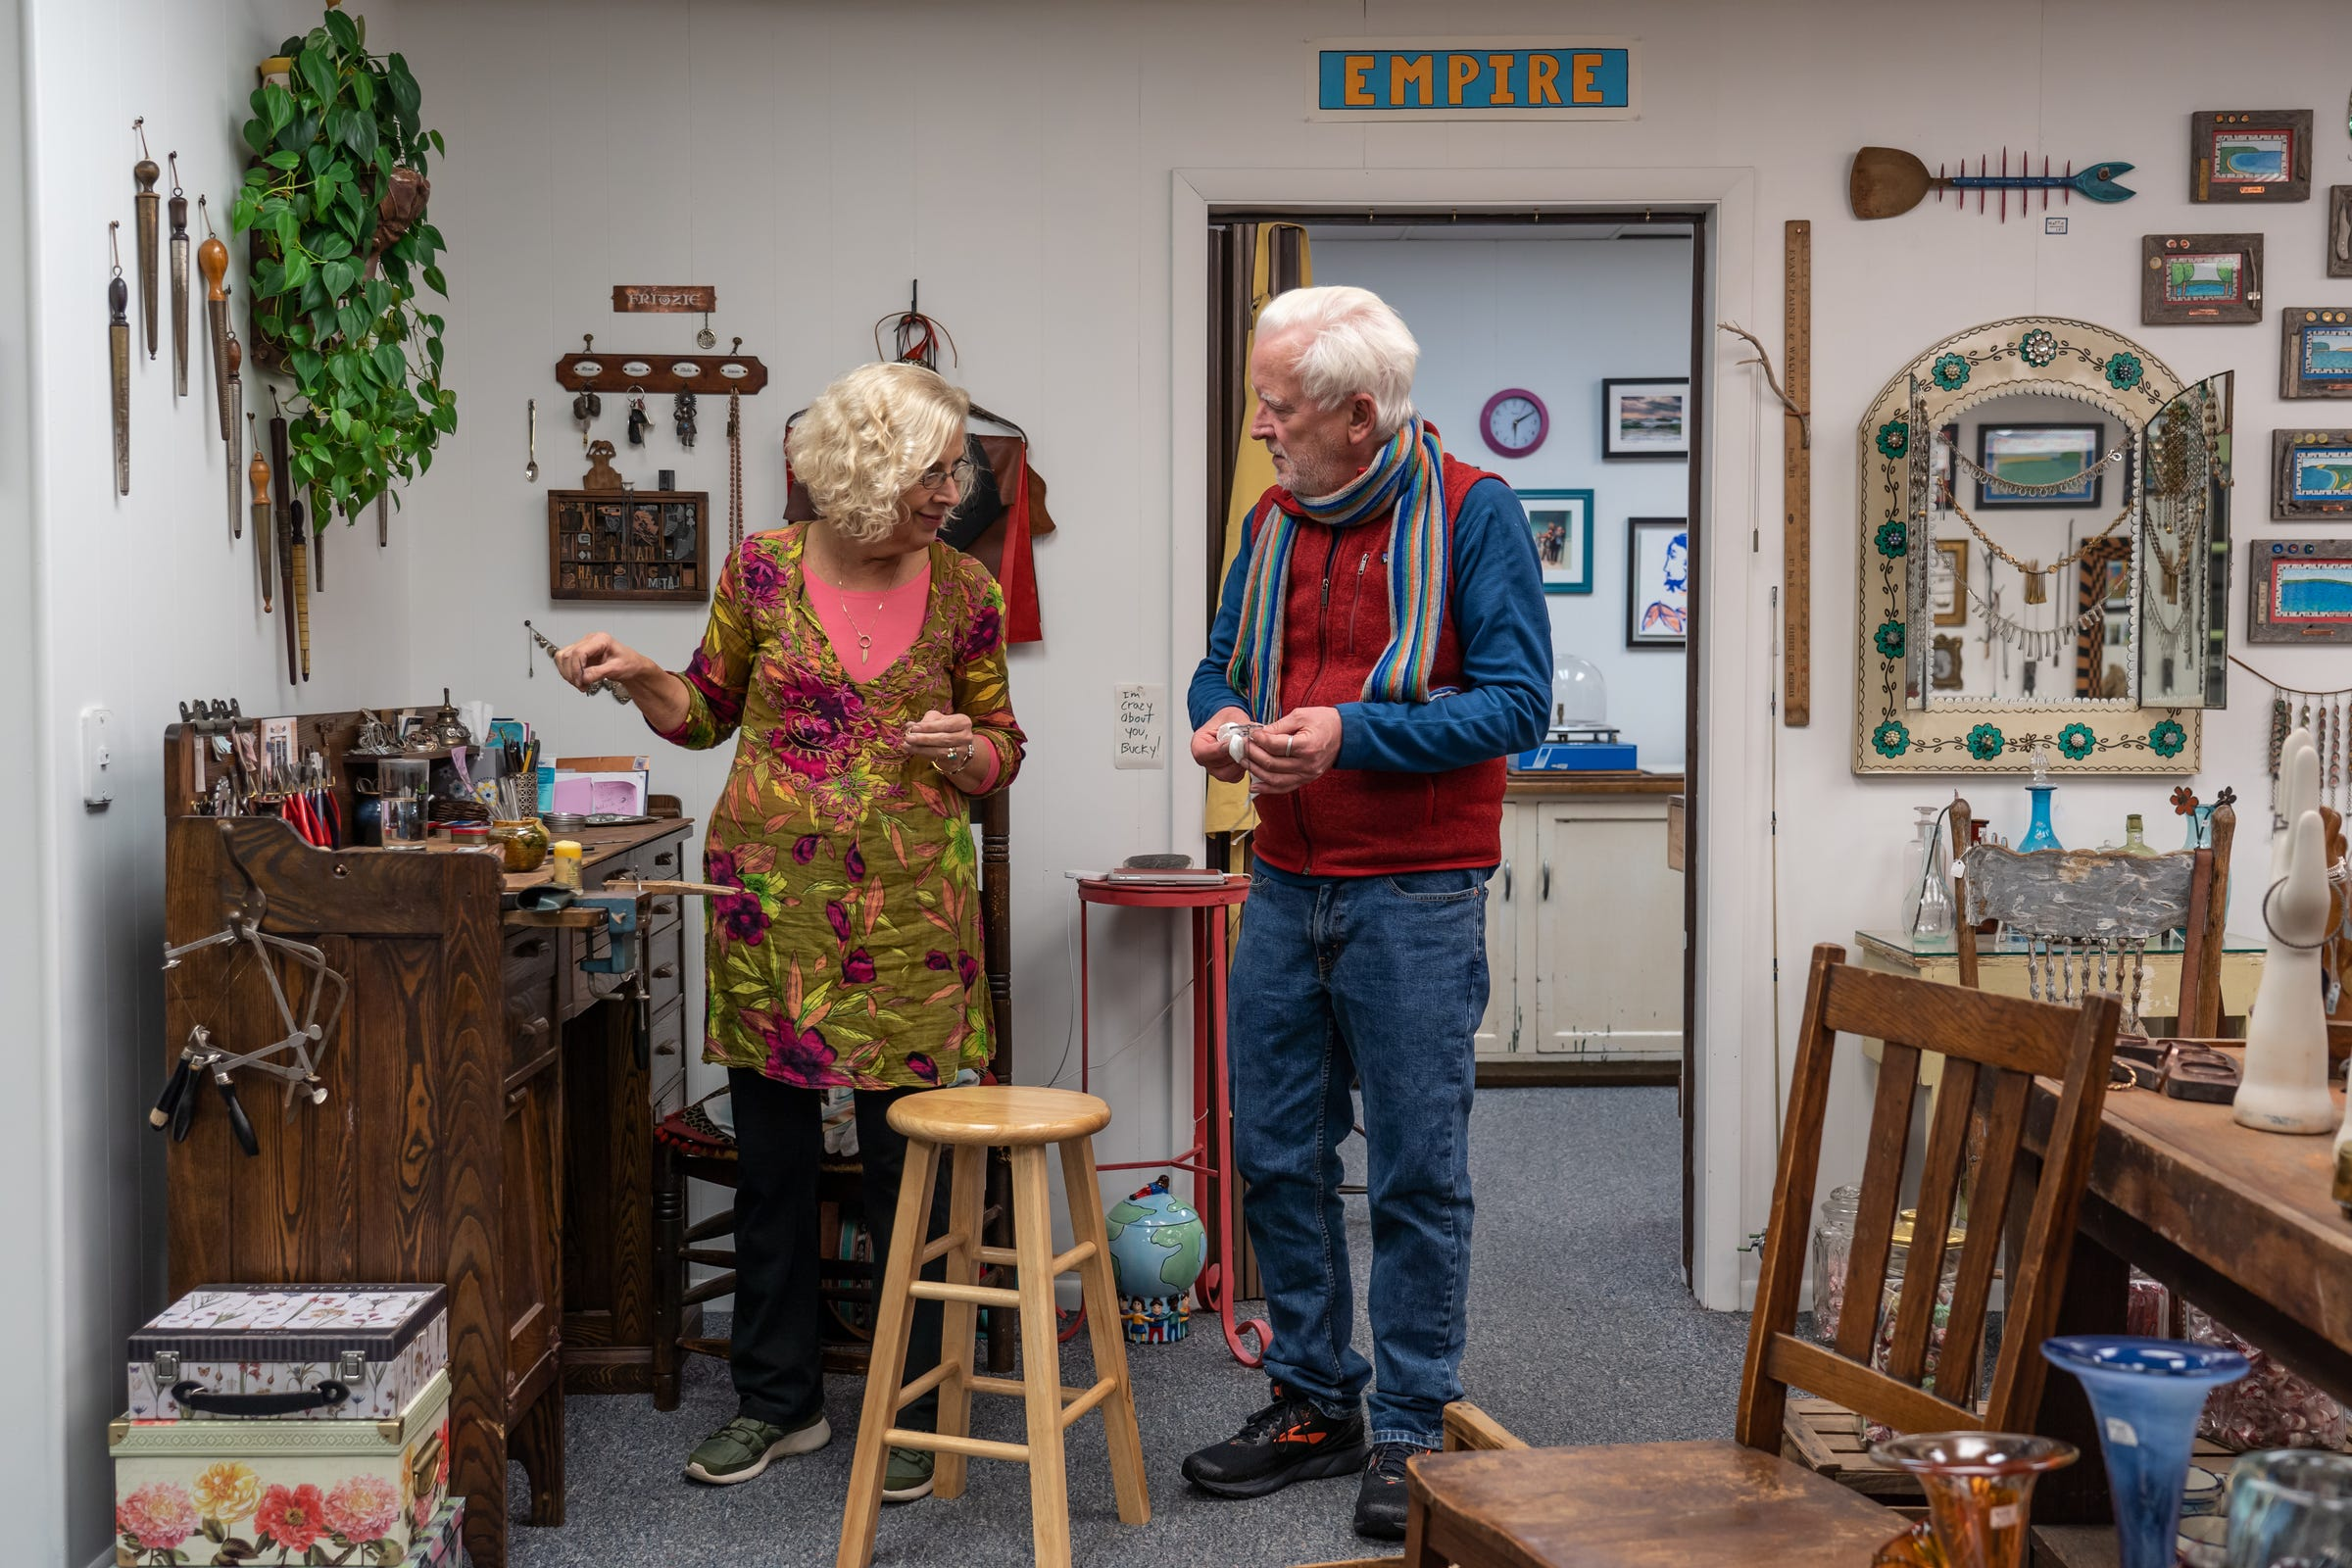 Becky Willis and Jim Hilton, owners of JoJo and Bucky Handmade in downtown Empire, talk inside their shop on Tuesday, Nov. 7, 2019.